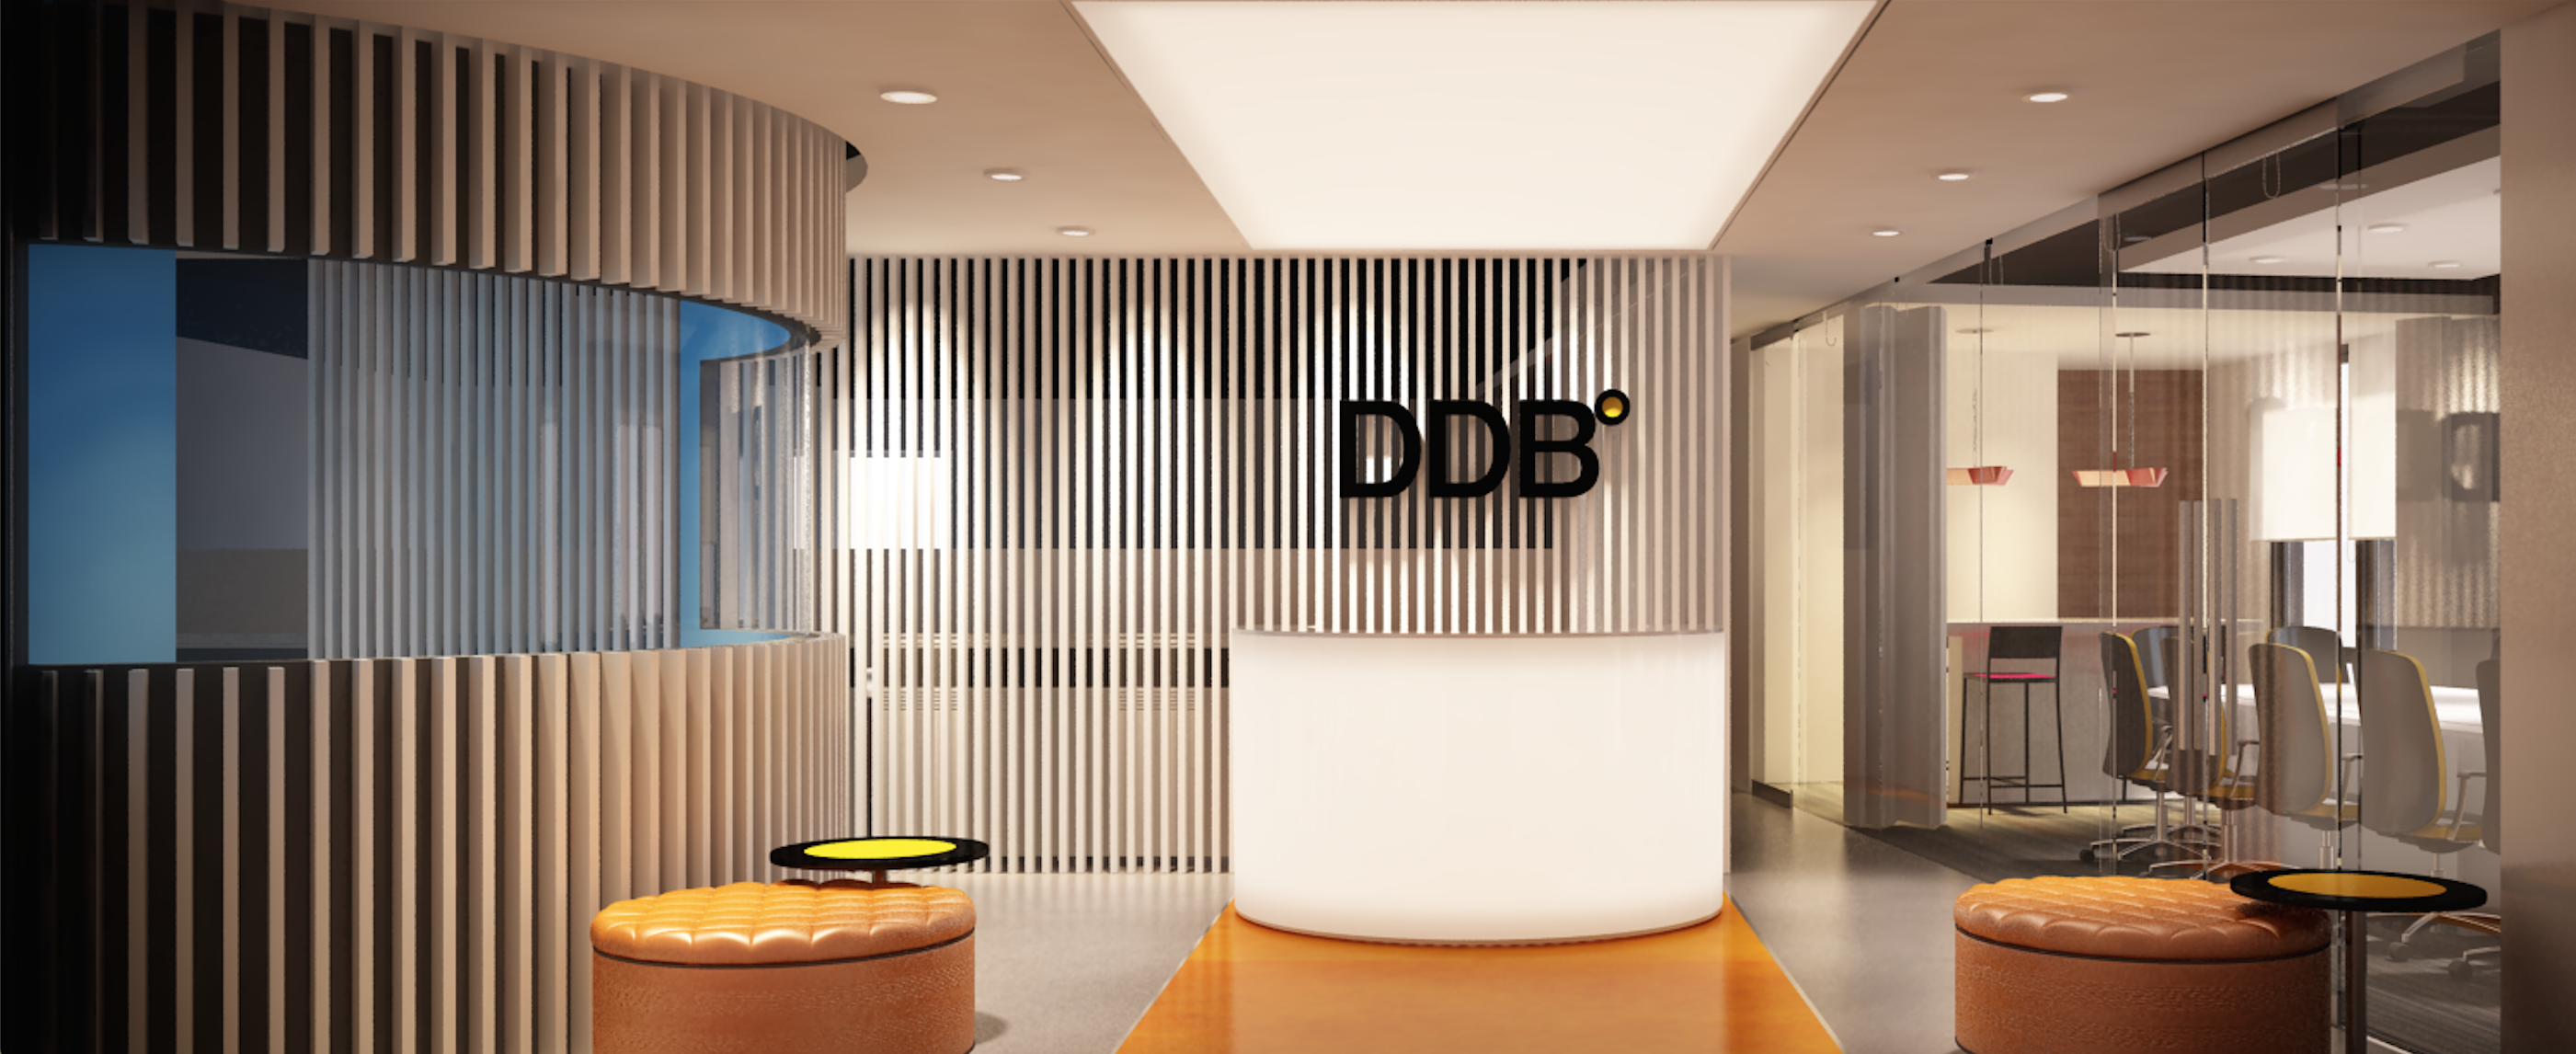 office reception. ddb office reception 3d design a